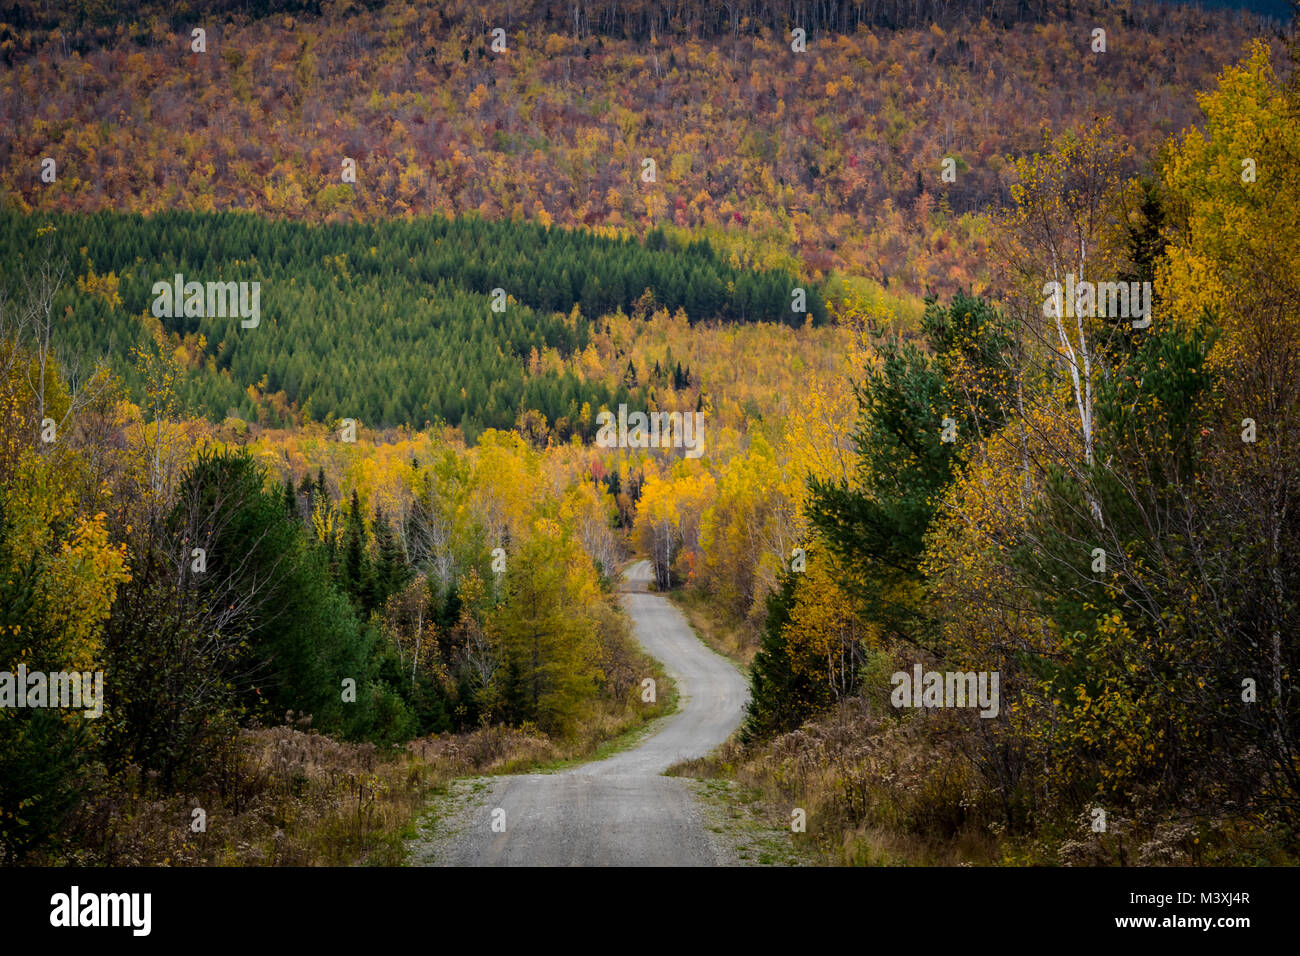 Dirt Road Snakes Through Colorful Woods - Stock Image